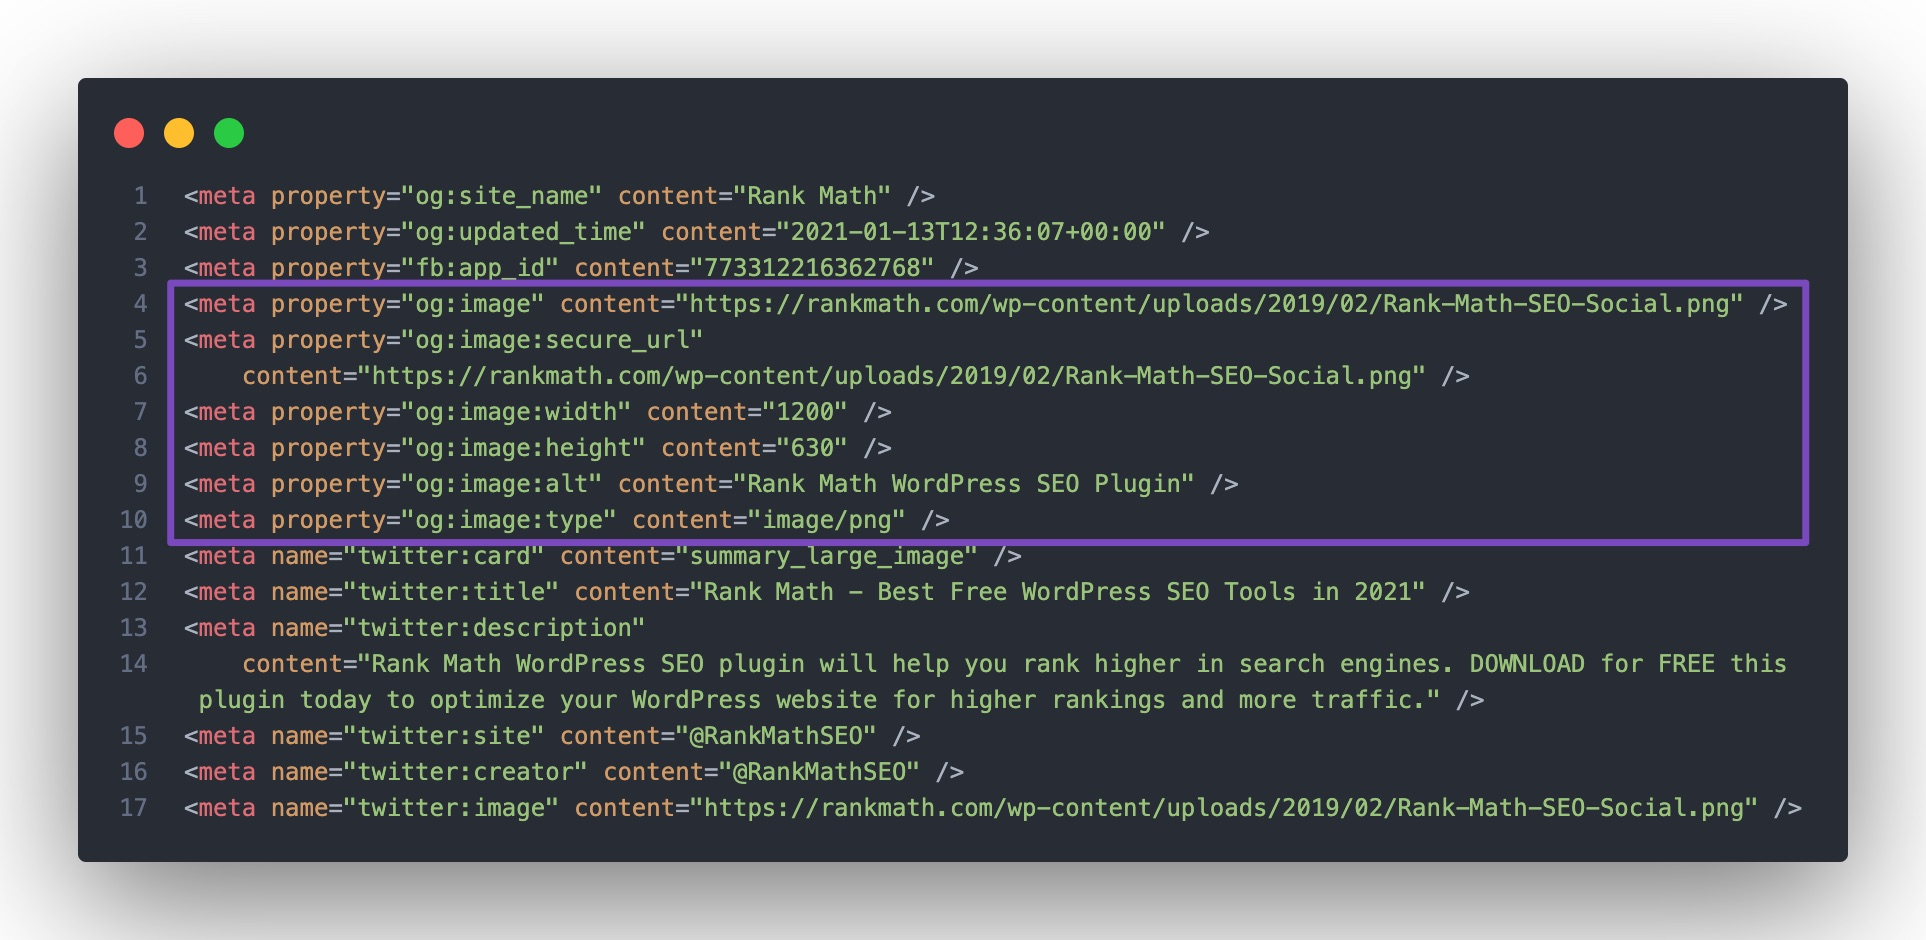 Check OpenGraph Image tags in source code